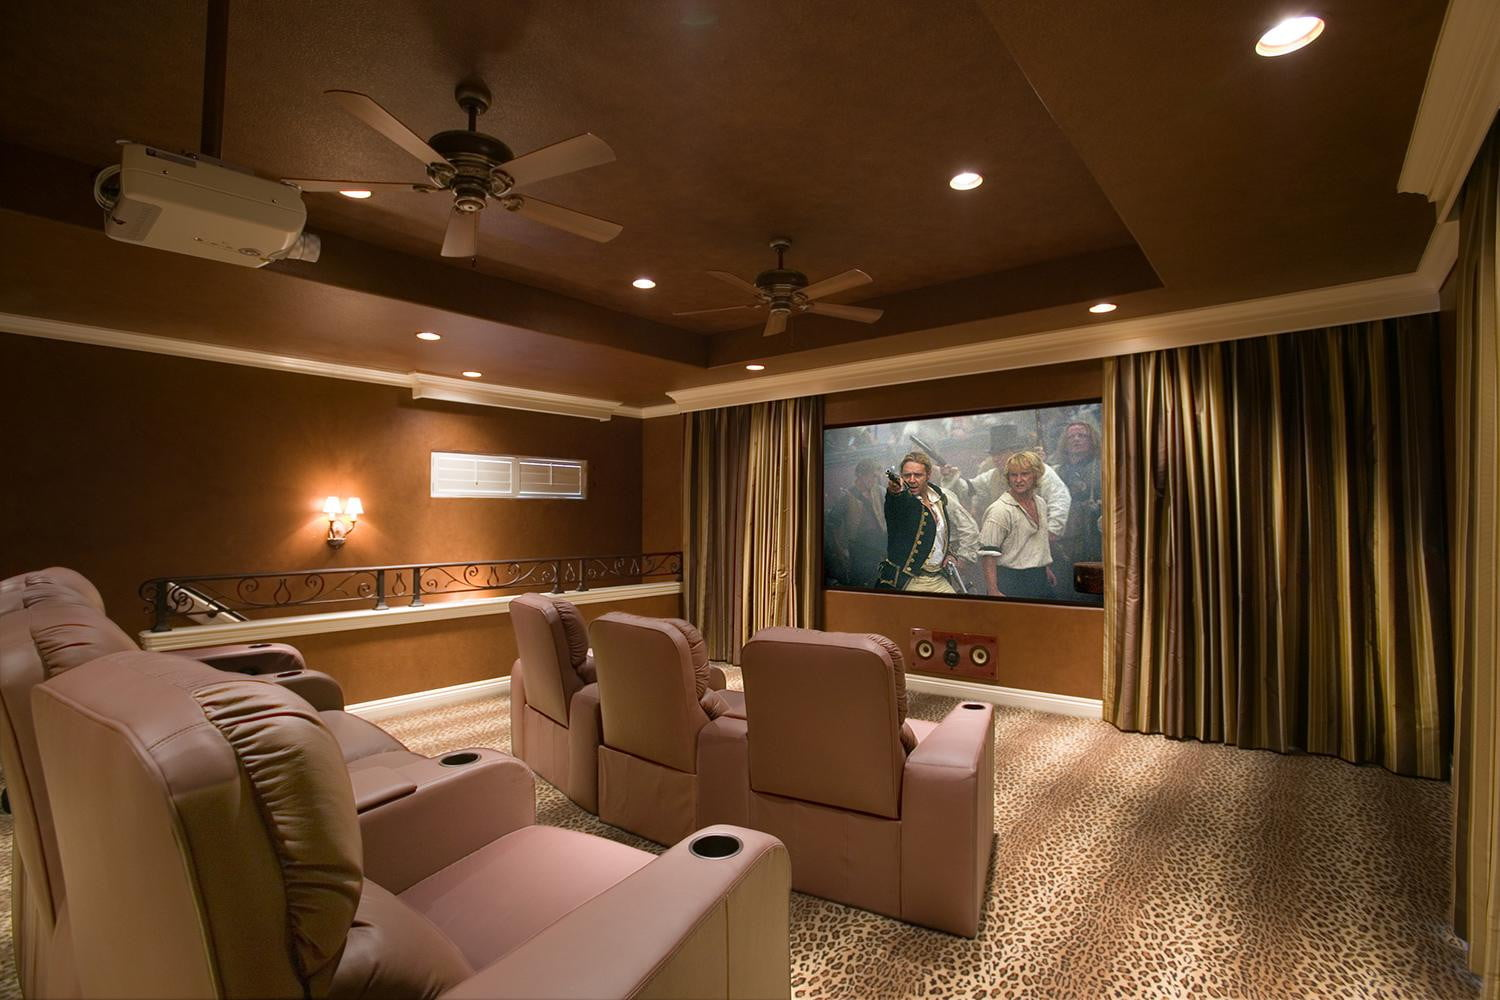 Home theater projection screen paint